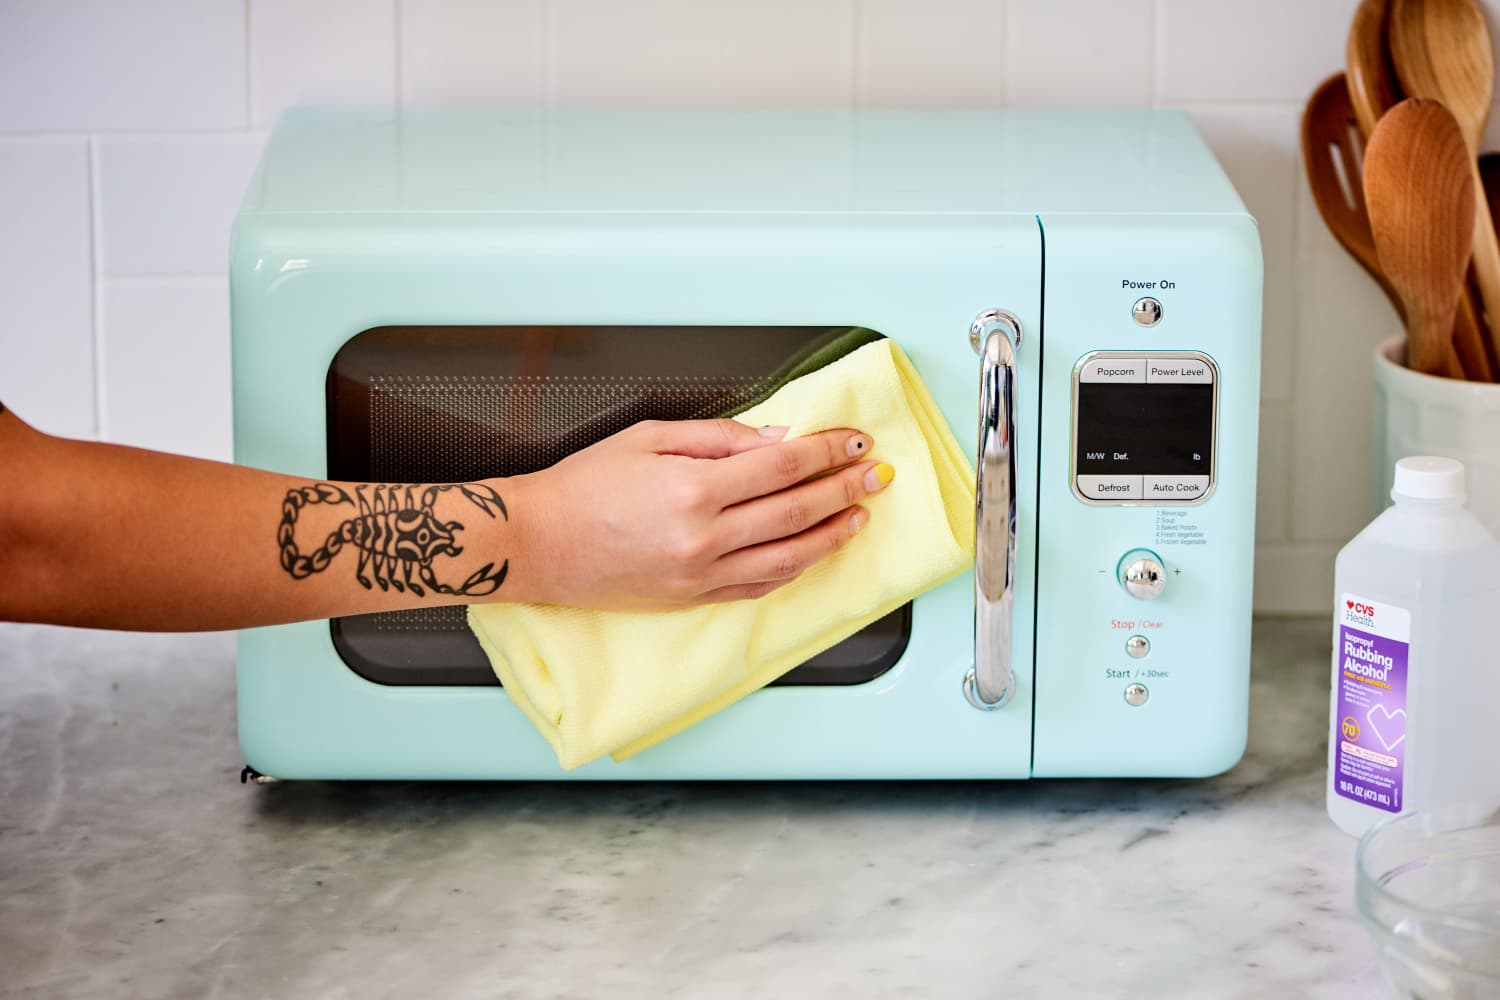 It's Probably Been Way Too Long, So Here's the Best Way to Clean a Microwave